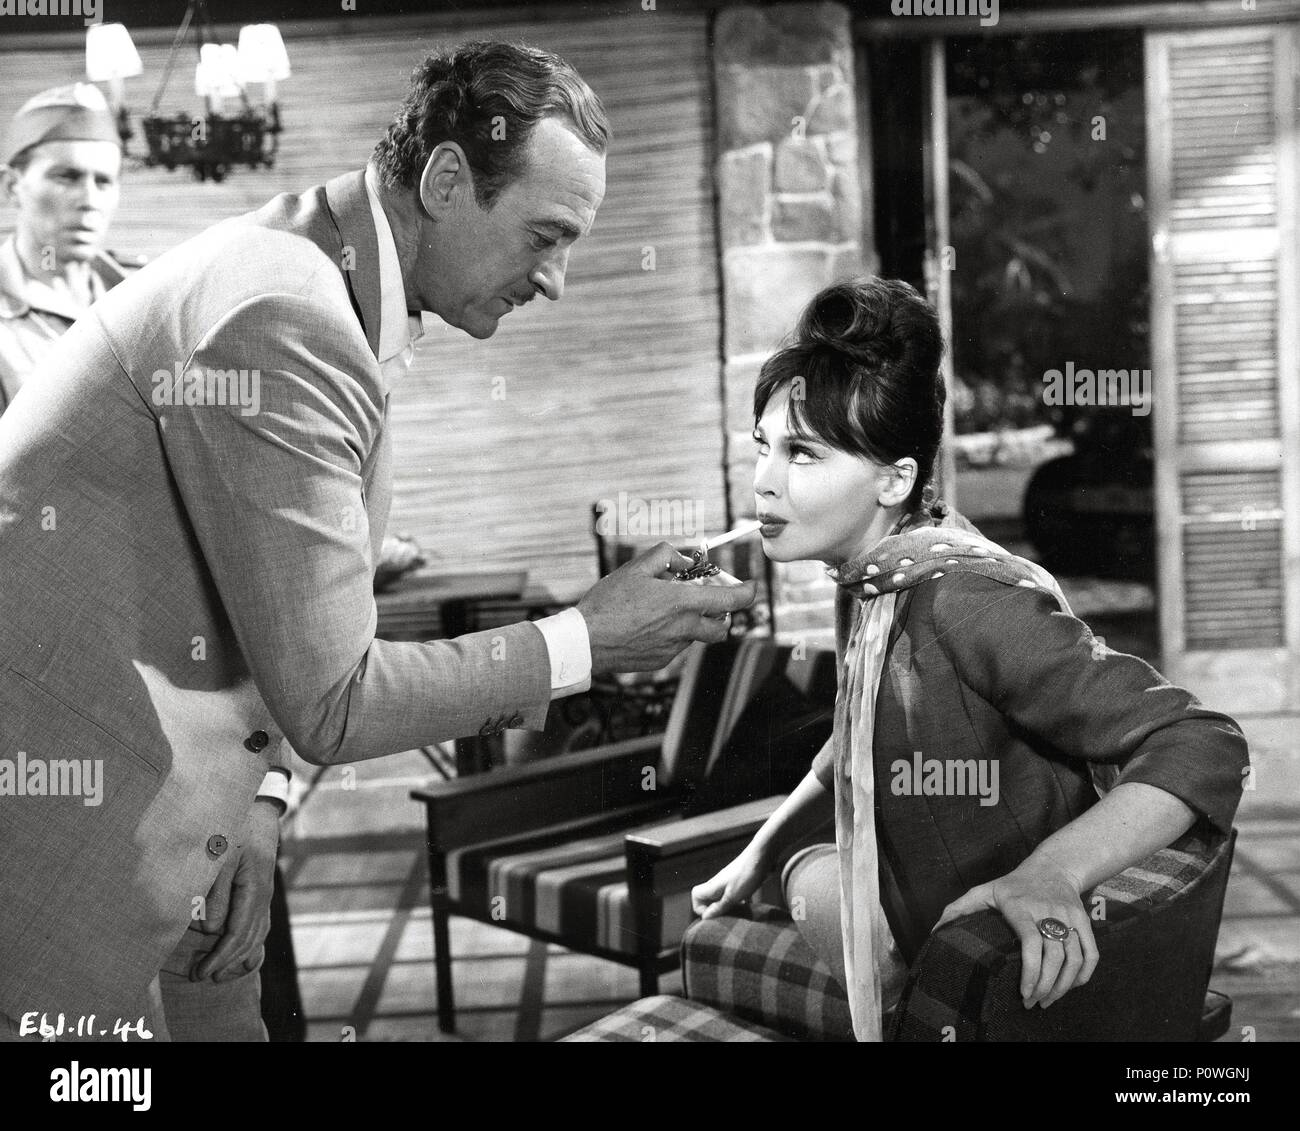 Original Film Title: GUNS OF DARKNESS.  English Title: GUNS OF DARKNESS.  Film Director: ANTHONY ASQUITH.  Year: 1962.  Stars: DAVID NIVEN; LESLIE CARON. Credit: WARNER BROTHERS / Album Stock Photo